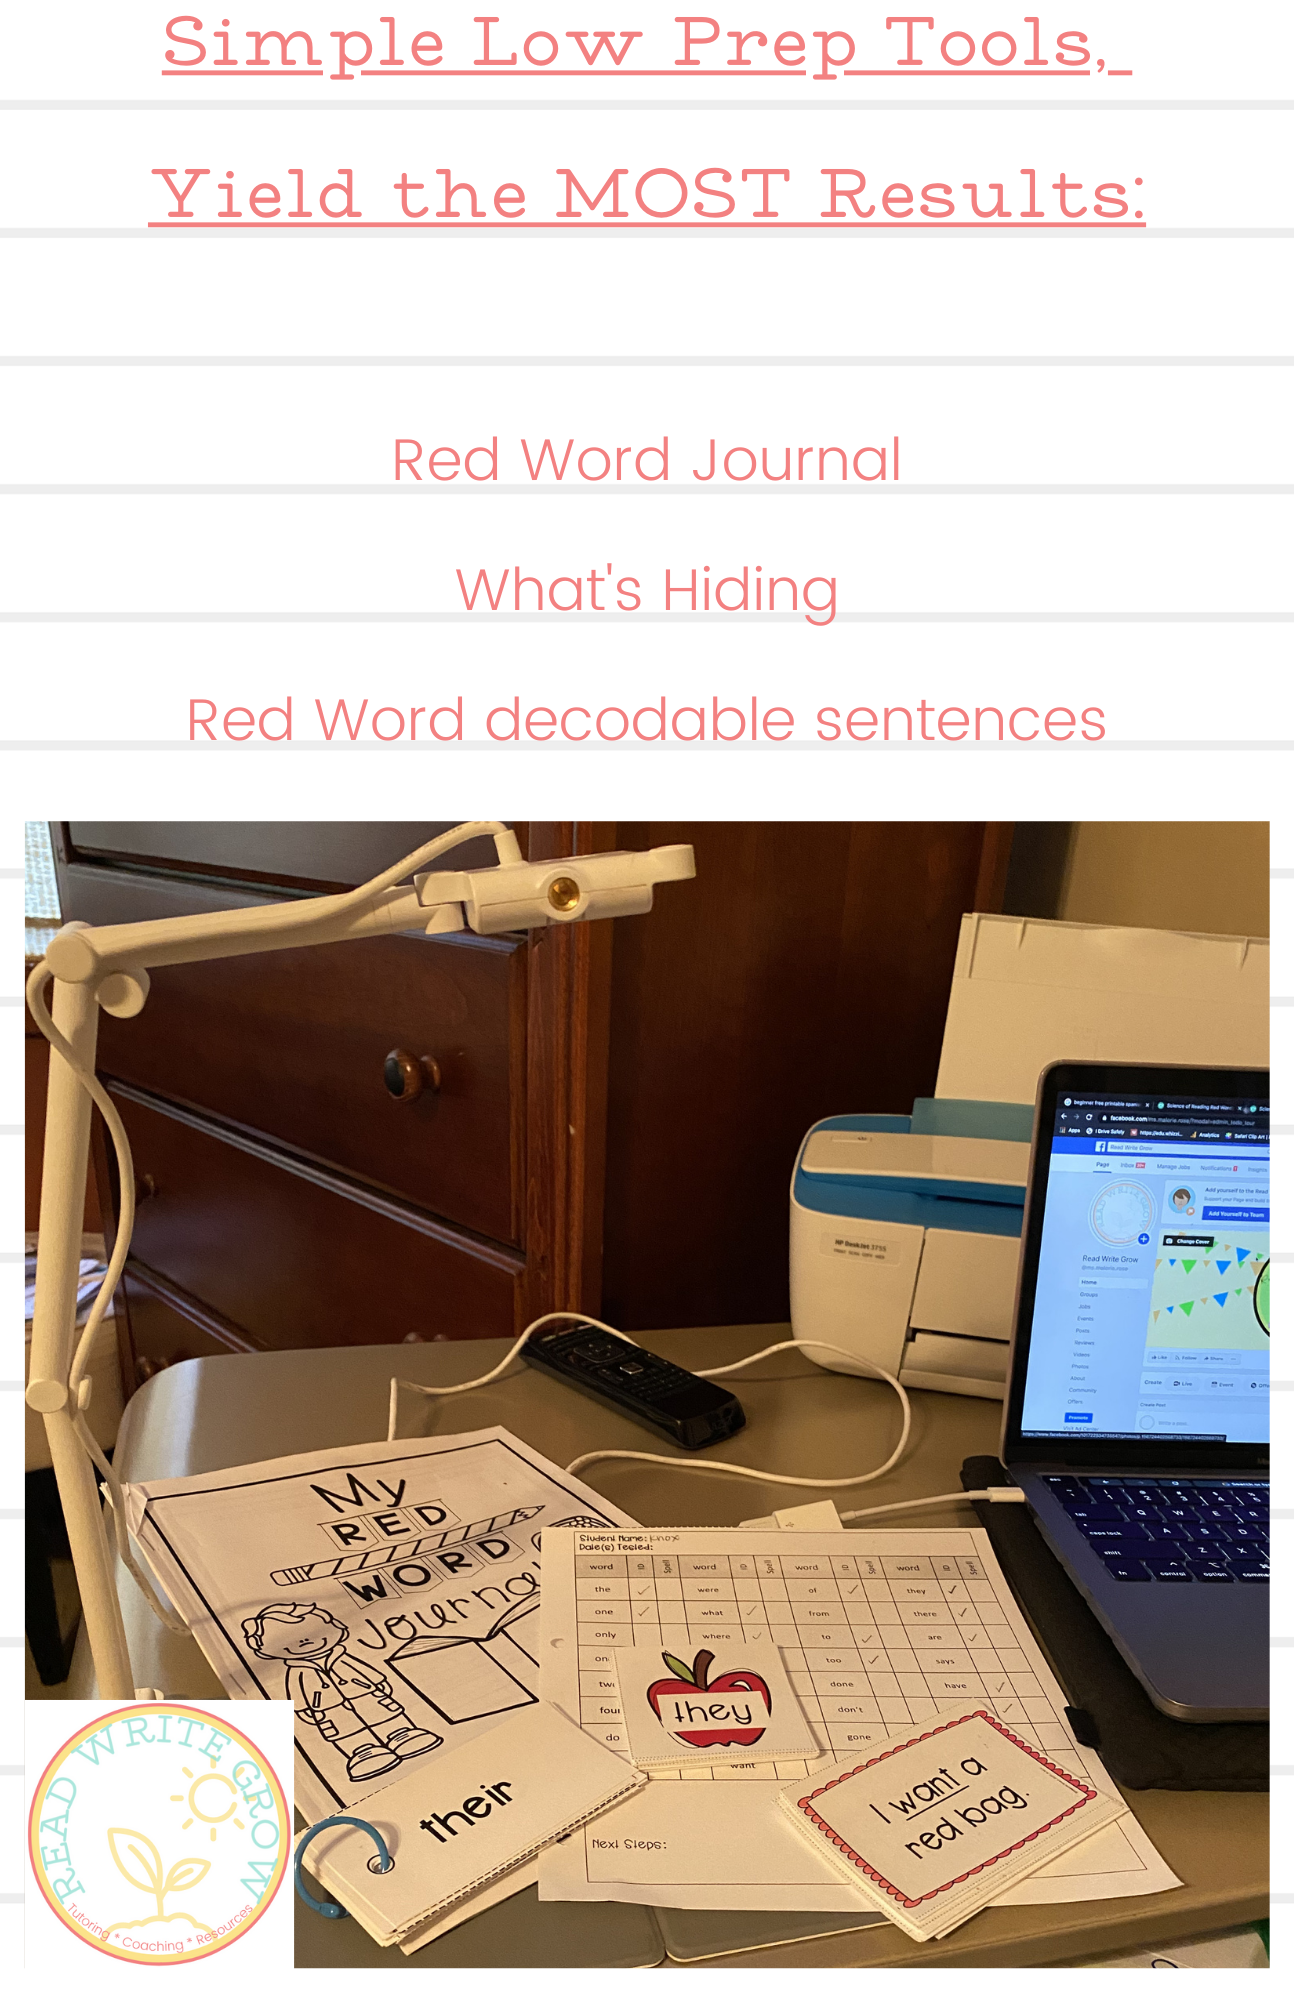 Red Word Journal